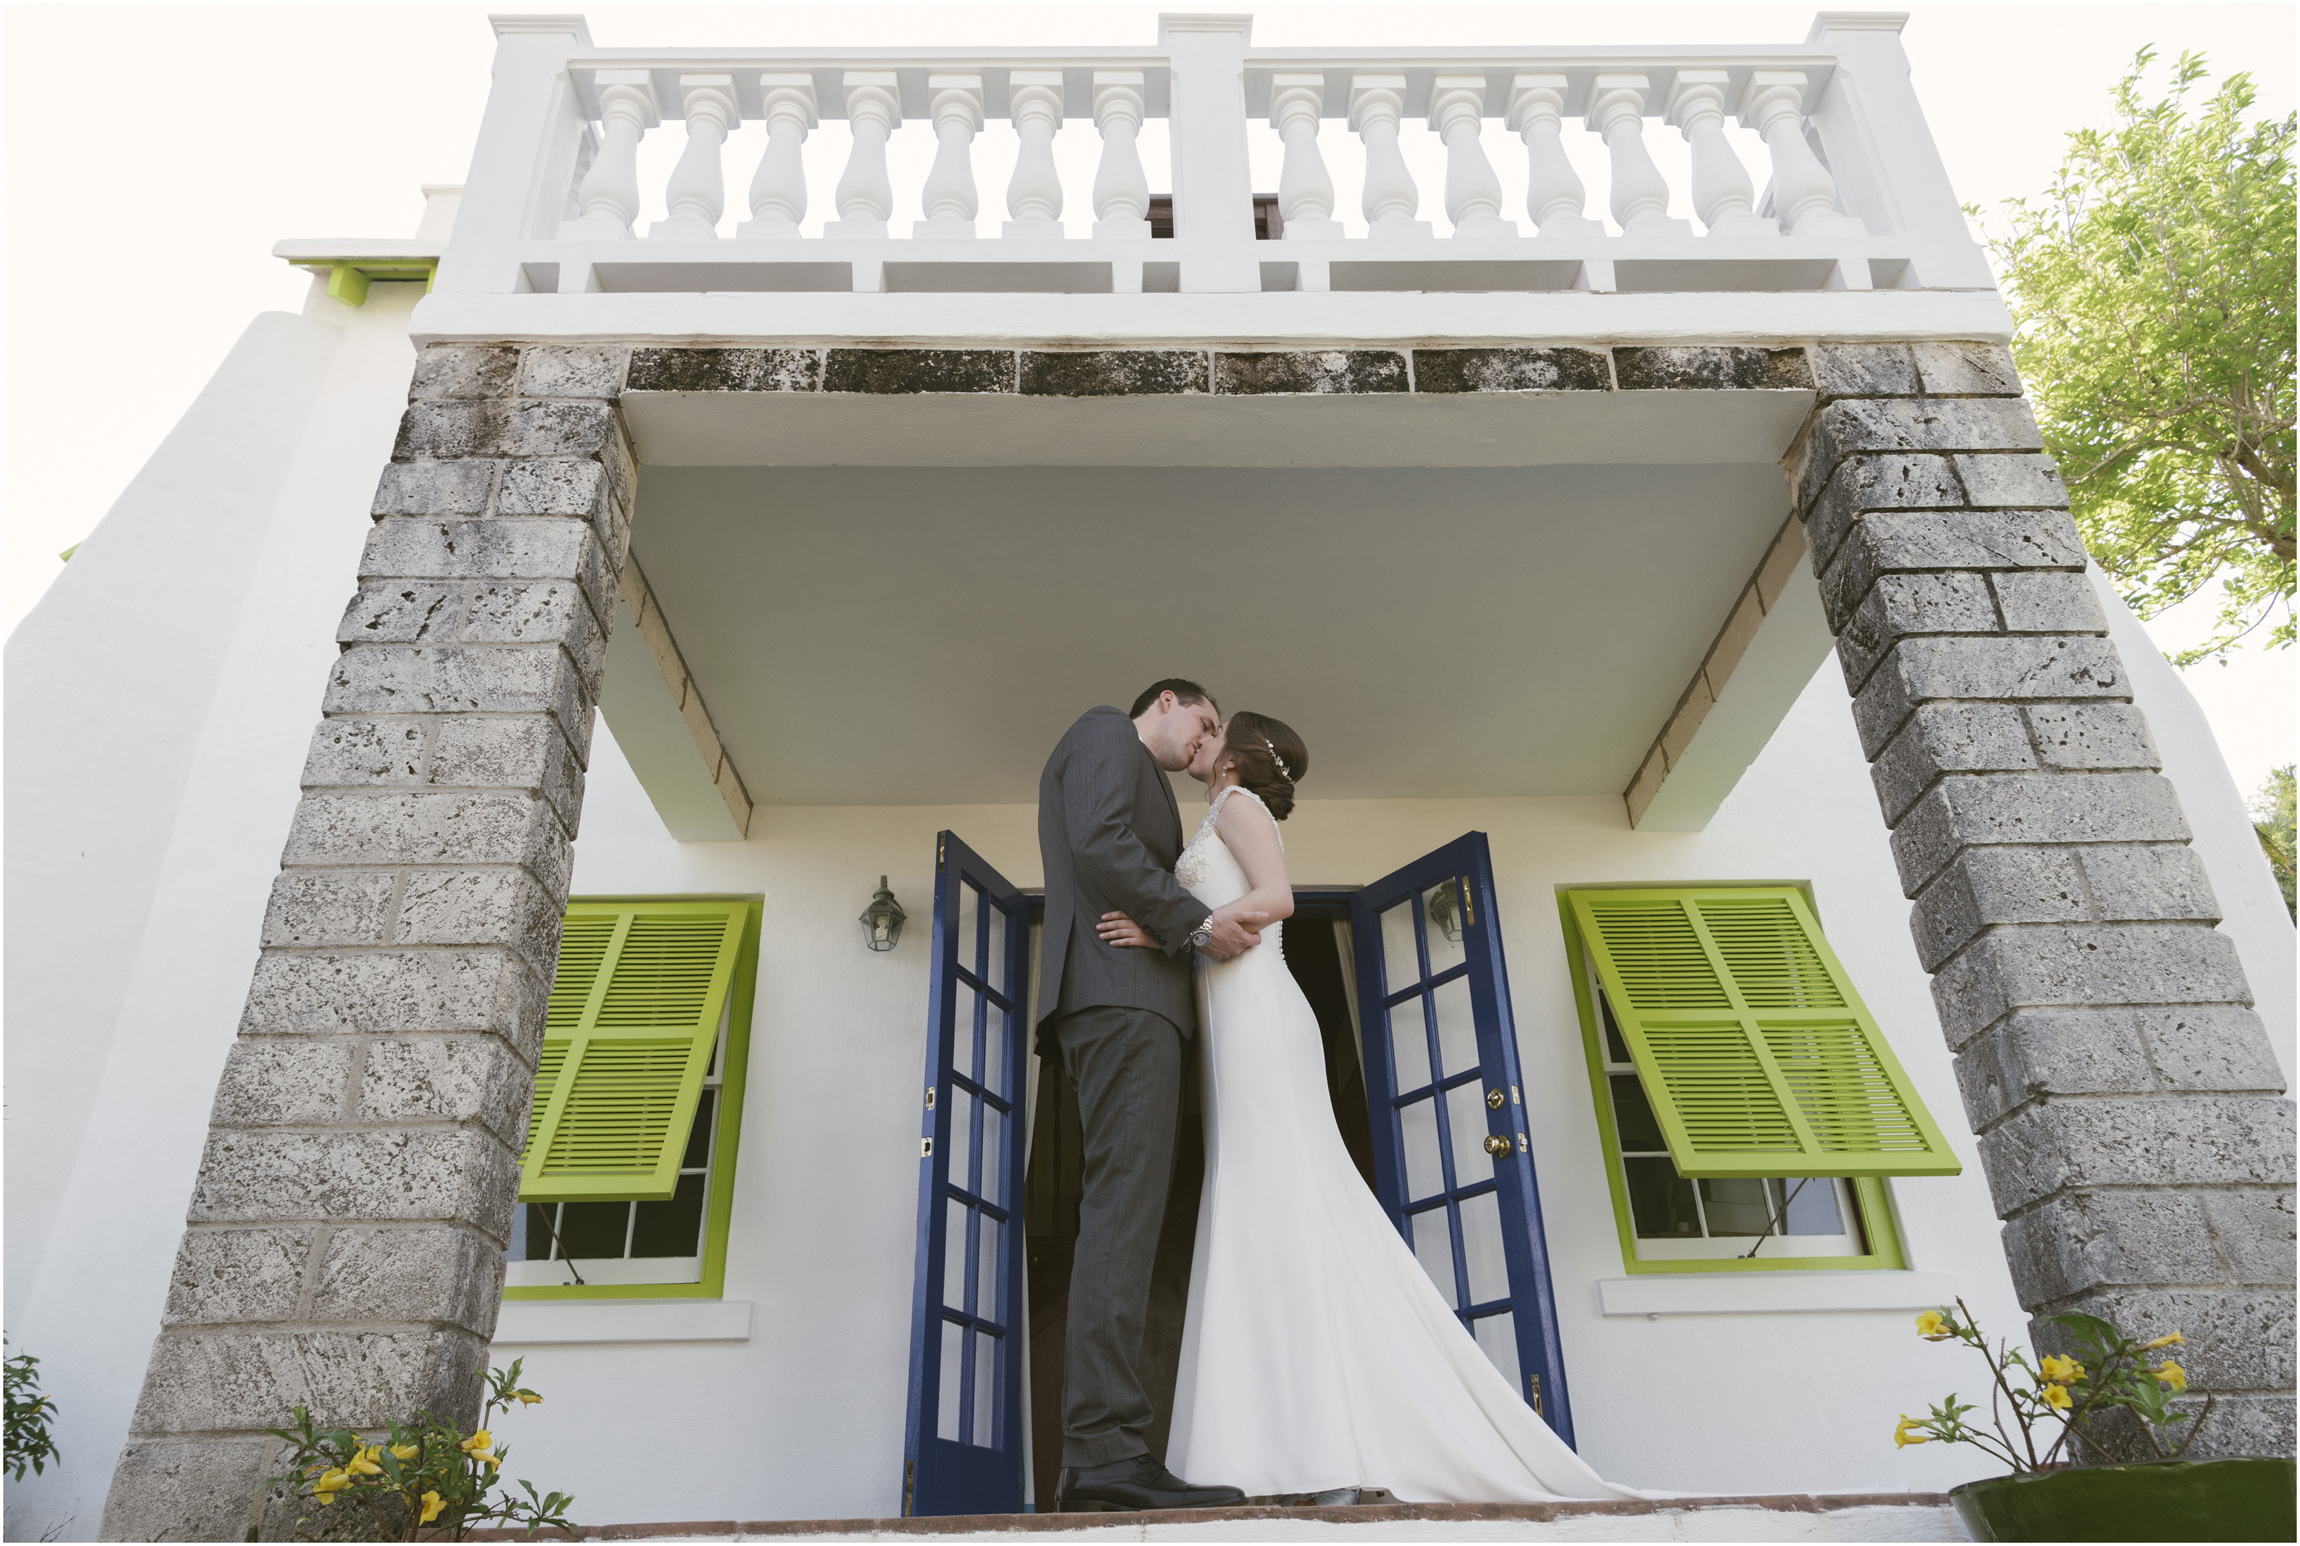 ©FianderFoto_Caribbean_Wedding_Photographer_The Reefs_Bermuda_Lauren_Erik_044.jpg